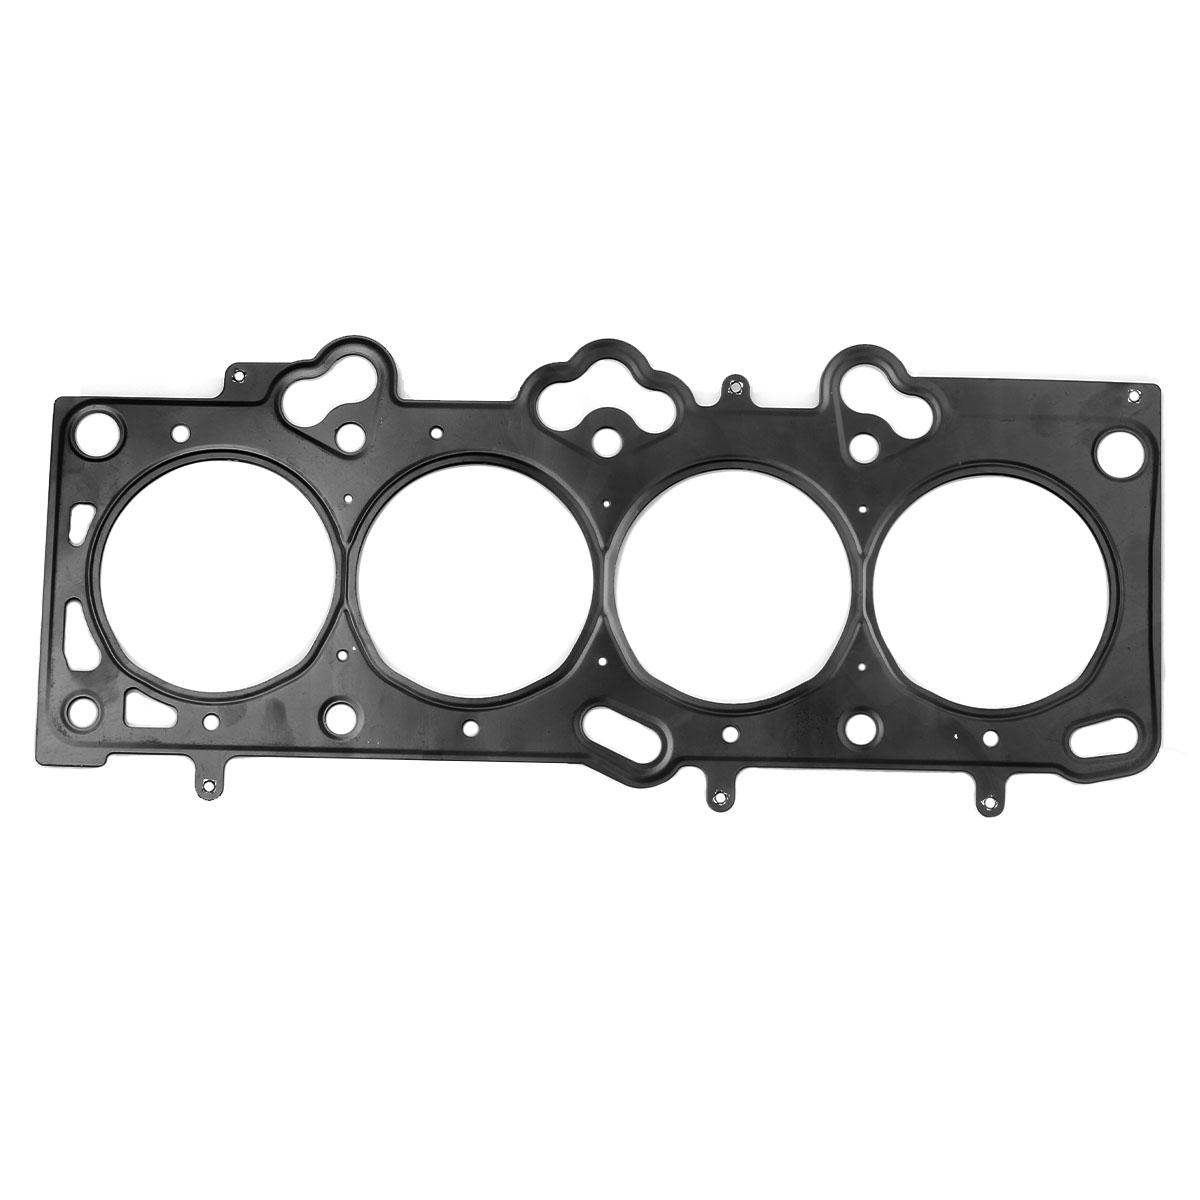 [Replace Head Gasket In A 2009 Kia Spectra]